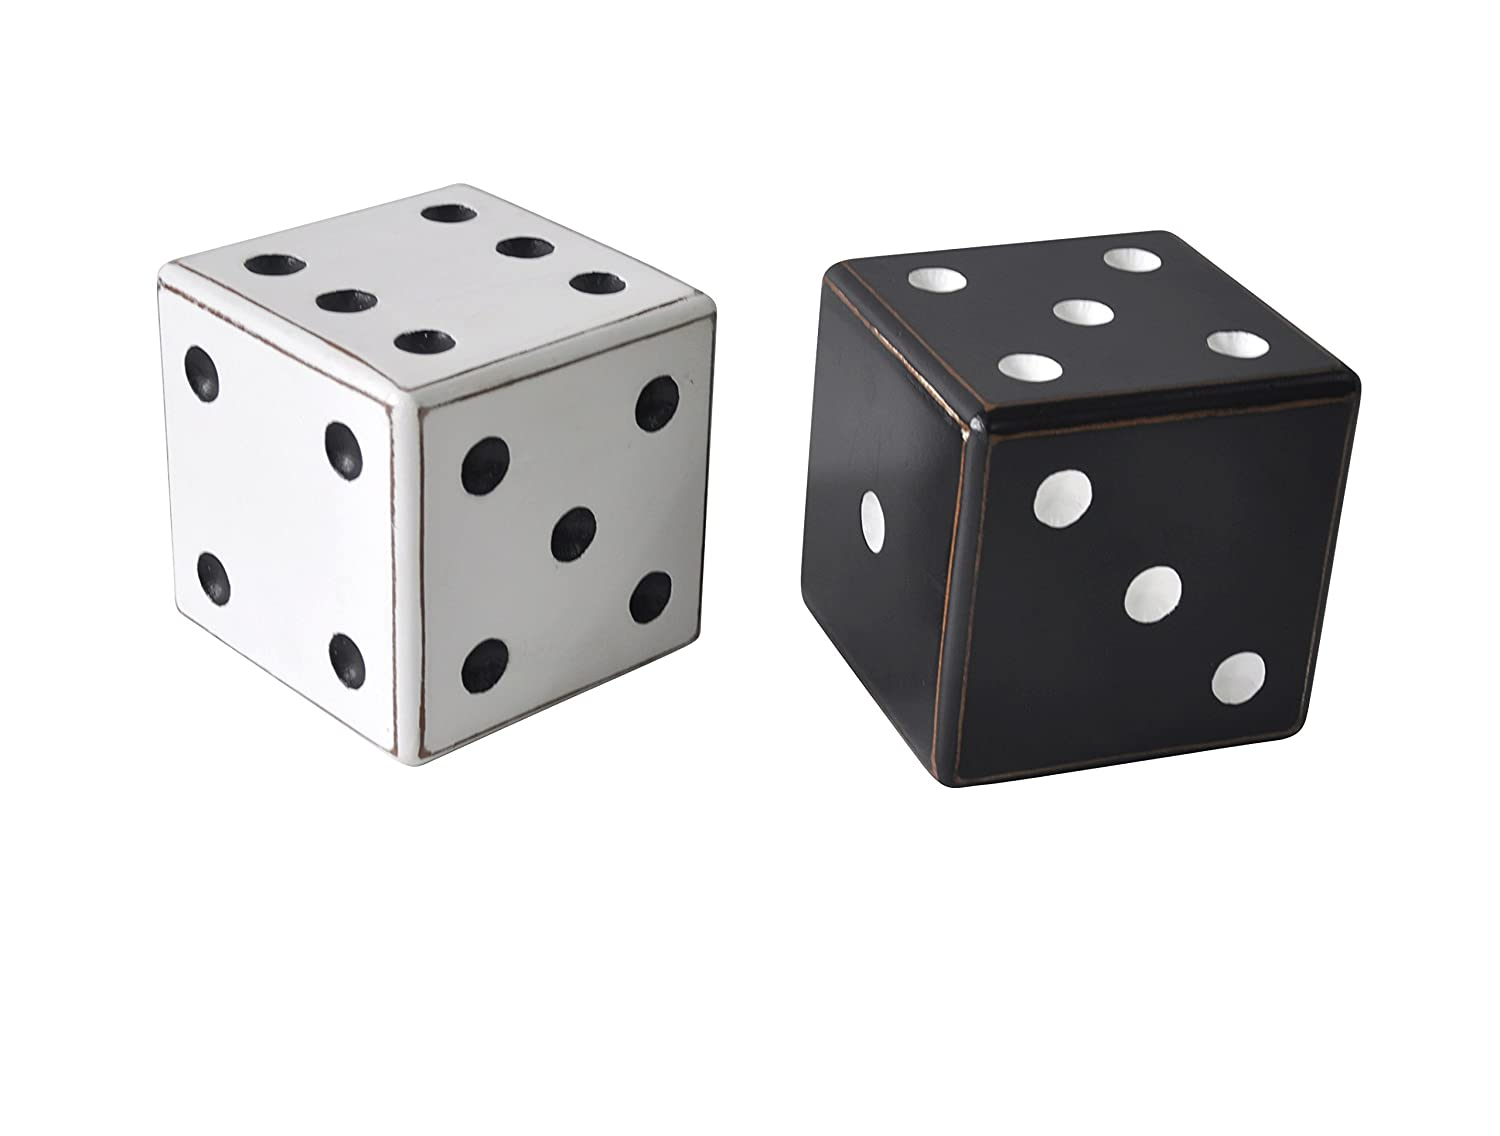 Deco 79 56917 Wooden Dice Table Decor (Set of 2), White/Black